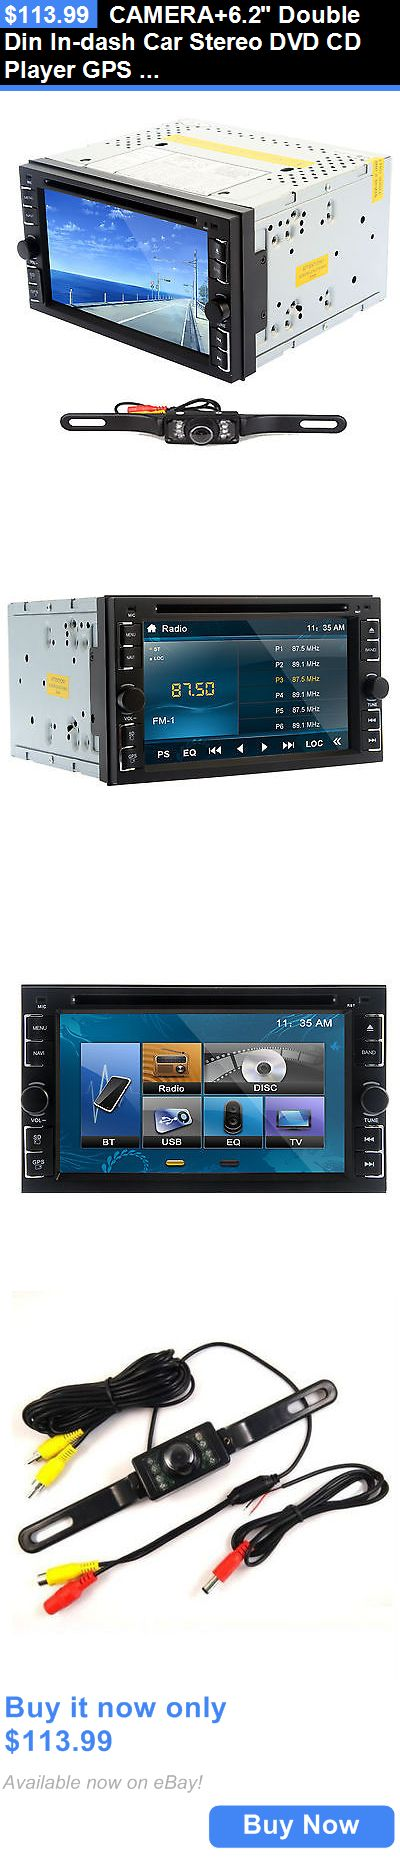 Vehicle Electronics And GPS: Camera+6.2 Double Din In-Dash Car Stereo Dvd Cd Player Gps Navi Bluetooth Radio BUY IT NOW ONLY: $113.99